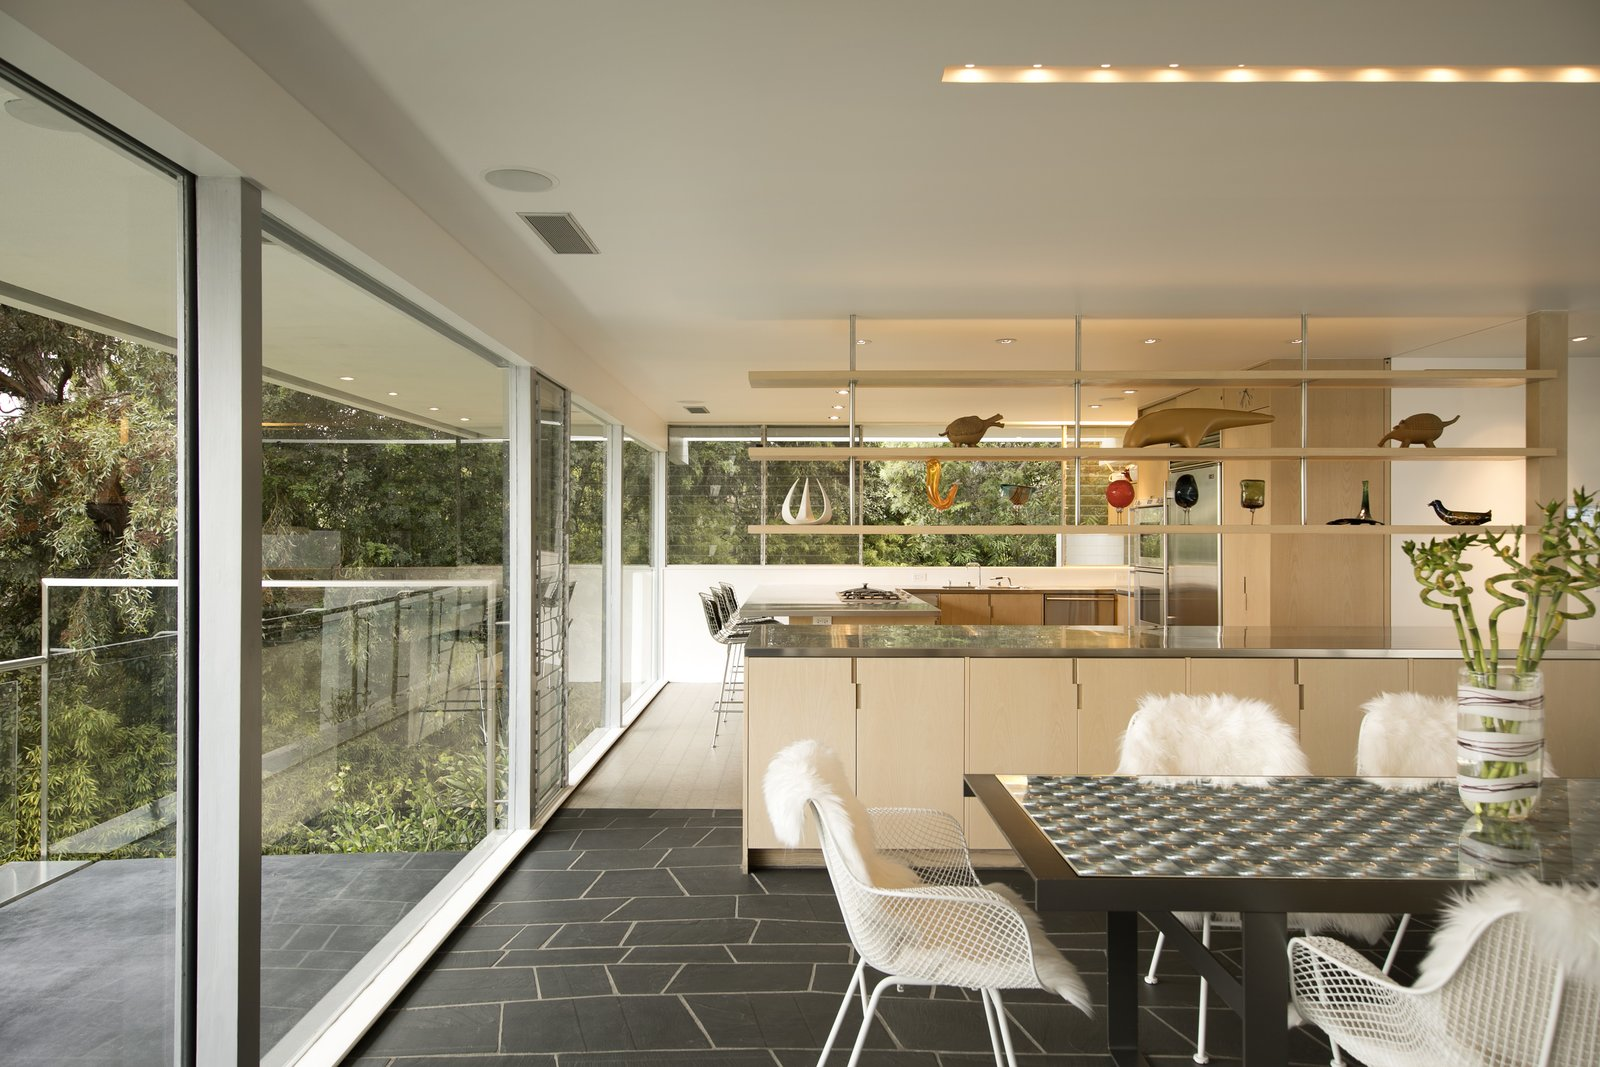 Dining Room, Slate Floor, Chair, Recessed Lighting, and Table Ash cabinetry and stainless steel appliances in the kitchen and living room.  Photos from A Restored Midcentury Jewel by Richard Neutra Hits the Market at $13.5M